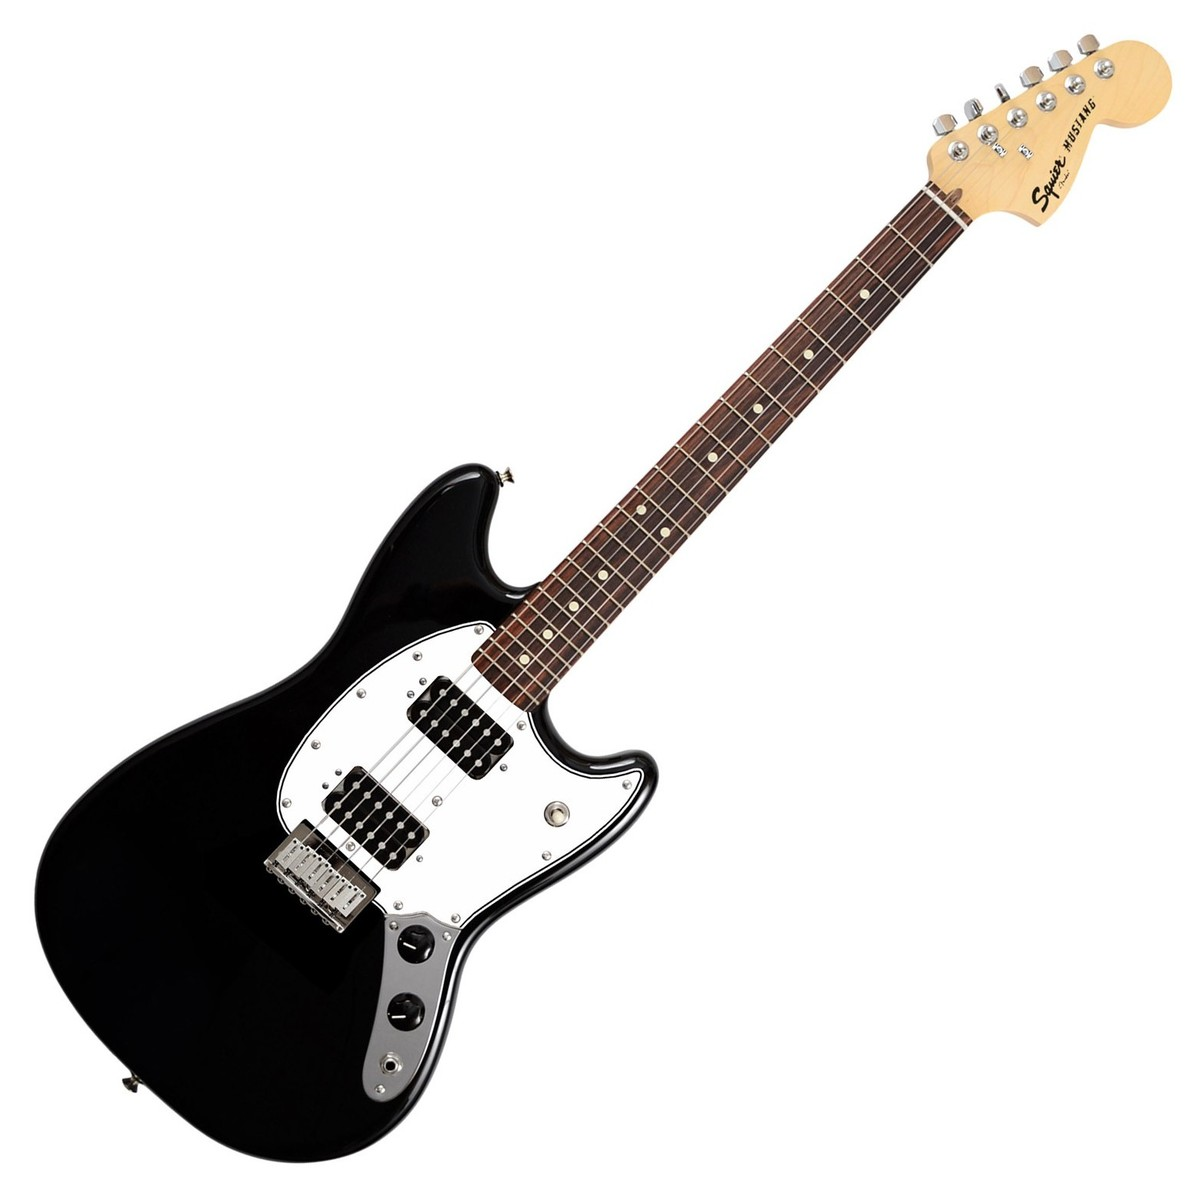 squier by fender bullet mustang hh electric guitar black at. Black Bedroom Furniture Sets. Home Design Ideas